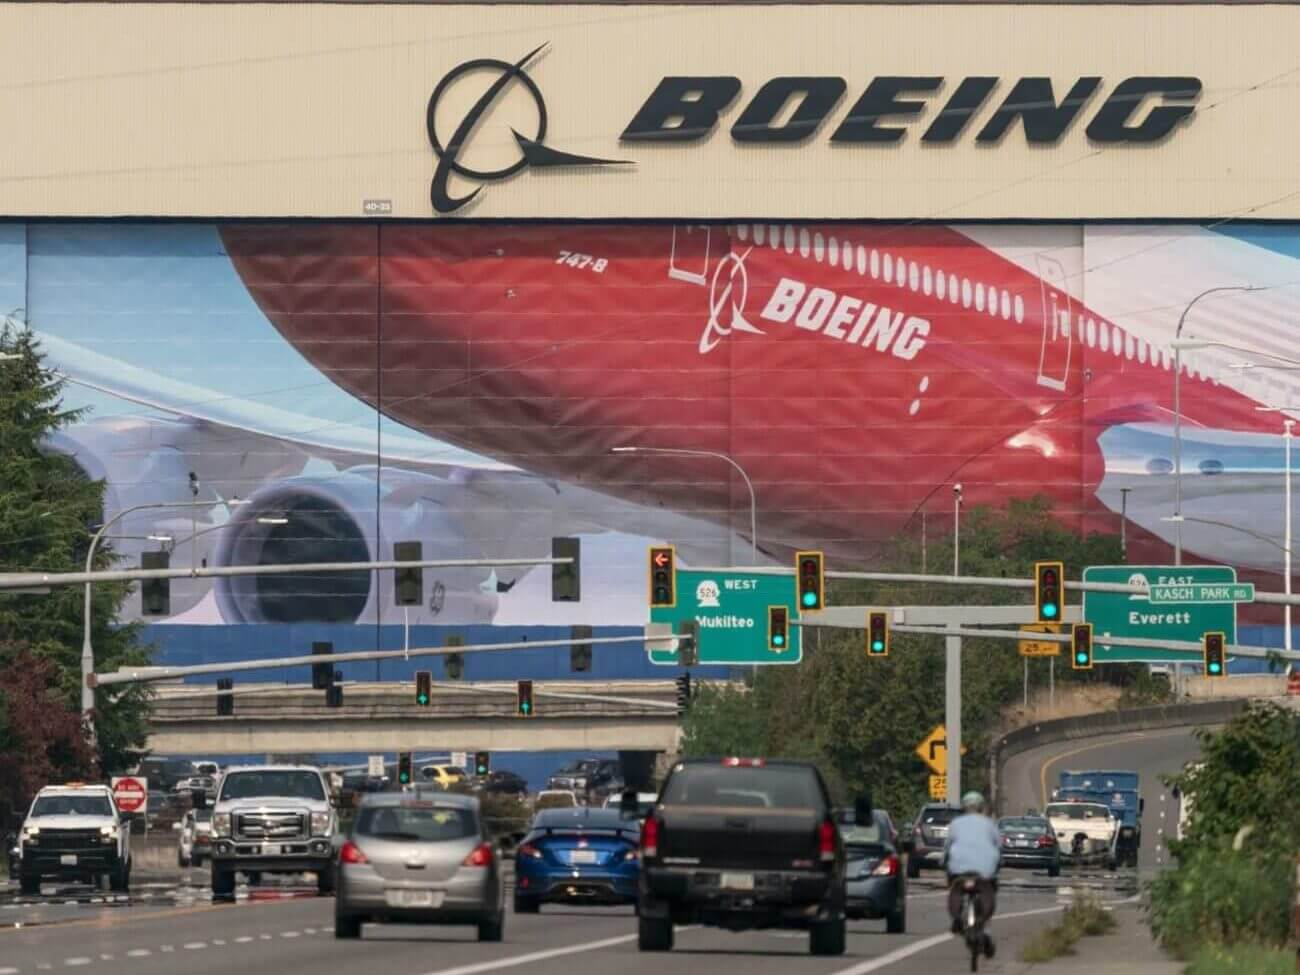 Boeing Is the Most recent Company to Tear a Hostile Industrial Atmosphere